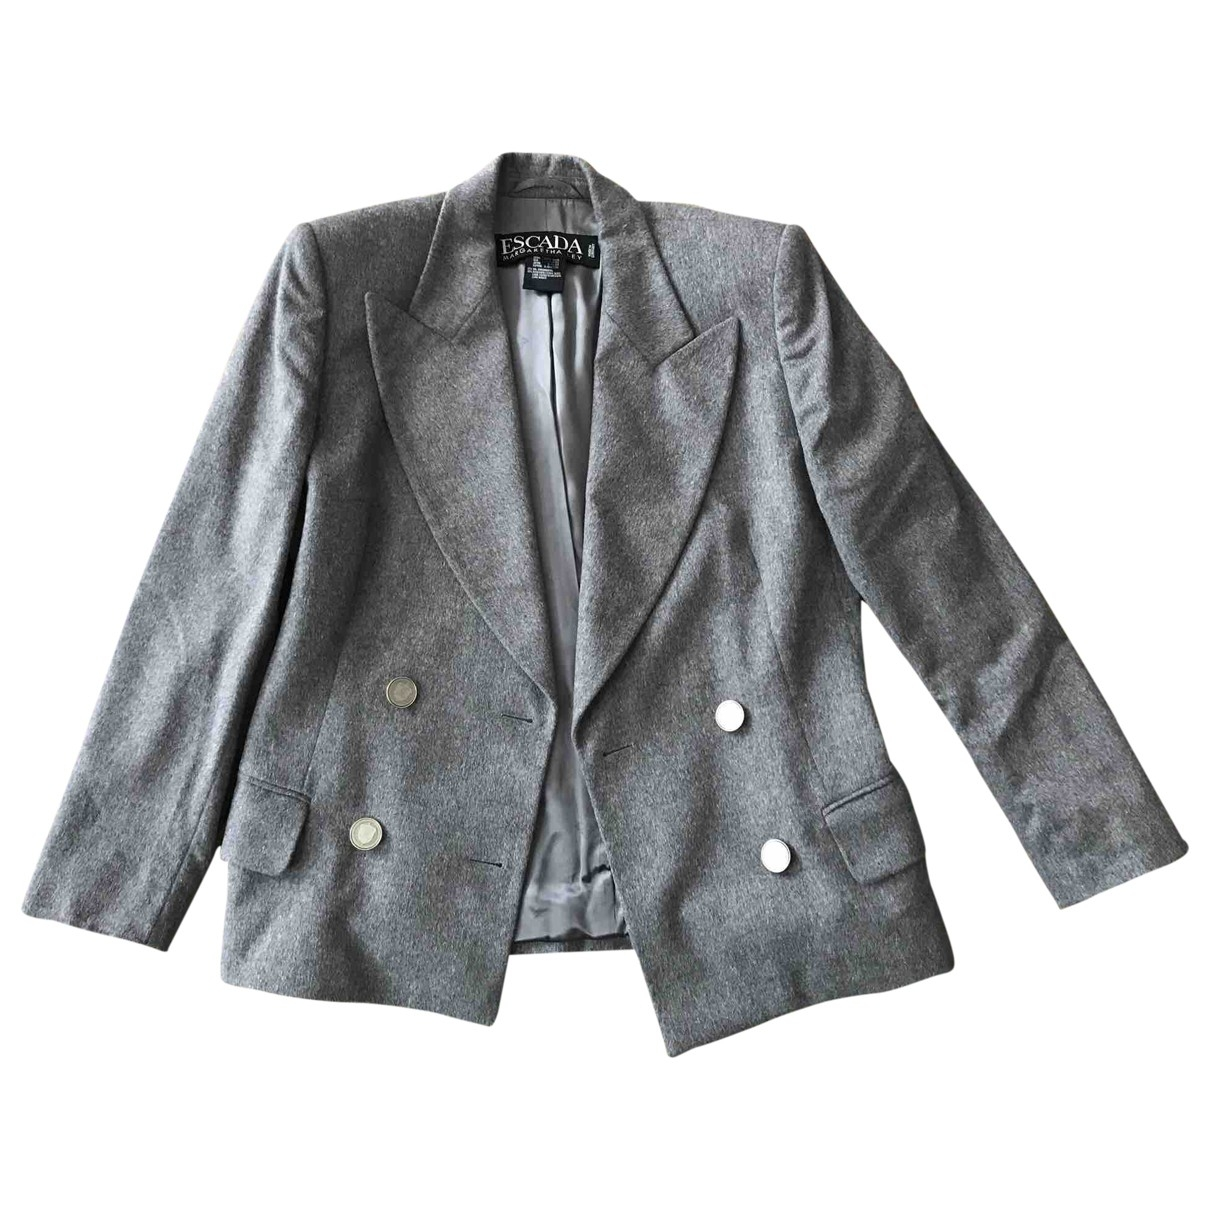 Escada \N Grey Wool jacket for Women 38 FR